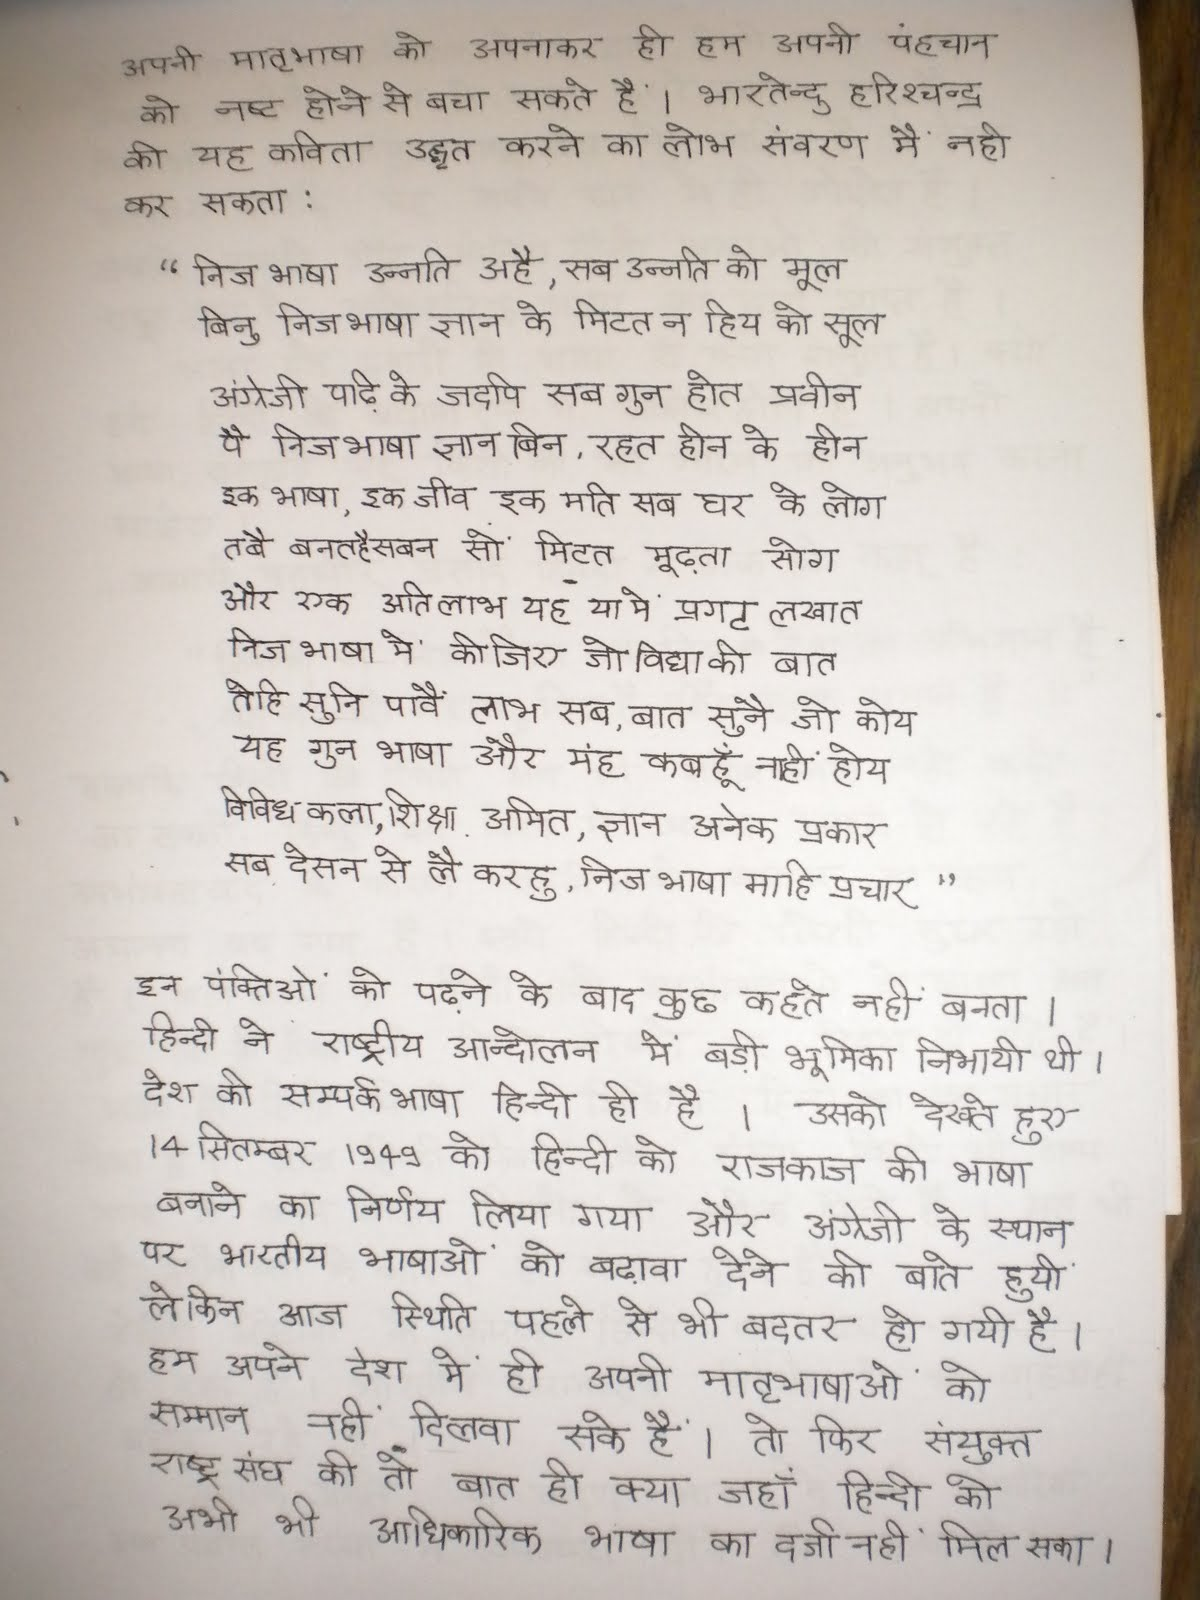 agar varsha na hoti Yadi varsha na hoti essay in hindi essay on agar barish na hoti to in hindi-हेलो दोस्तों कैसे हैं आप सभी.